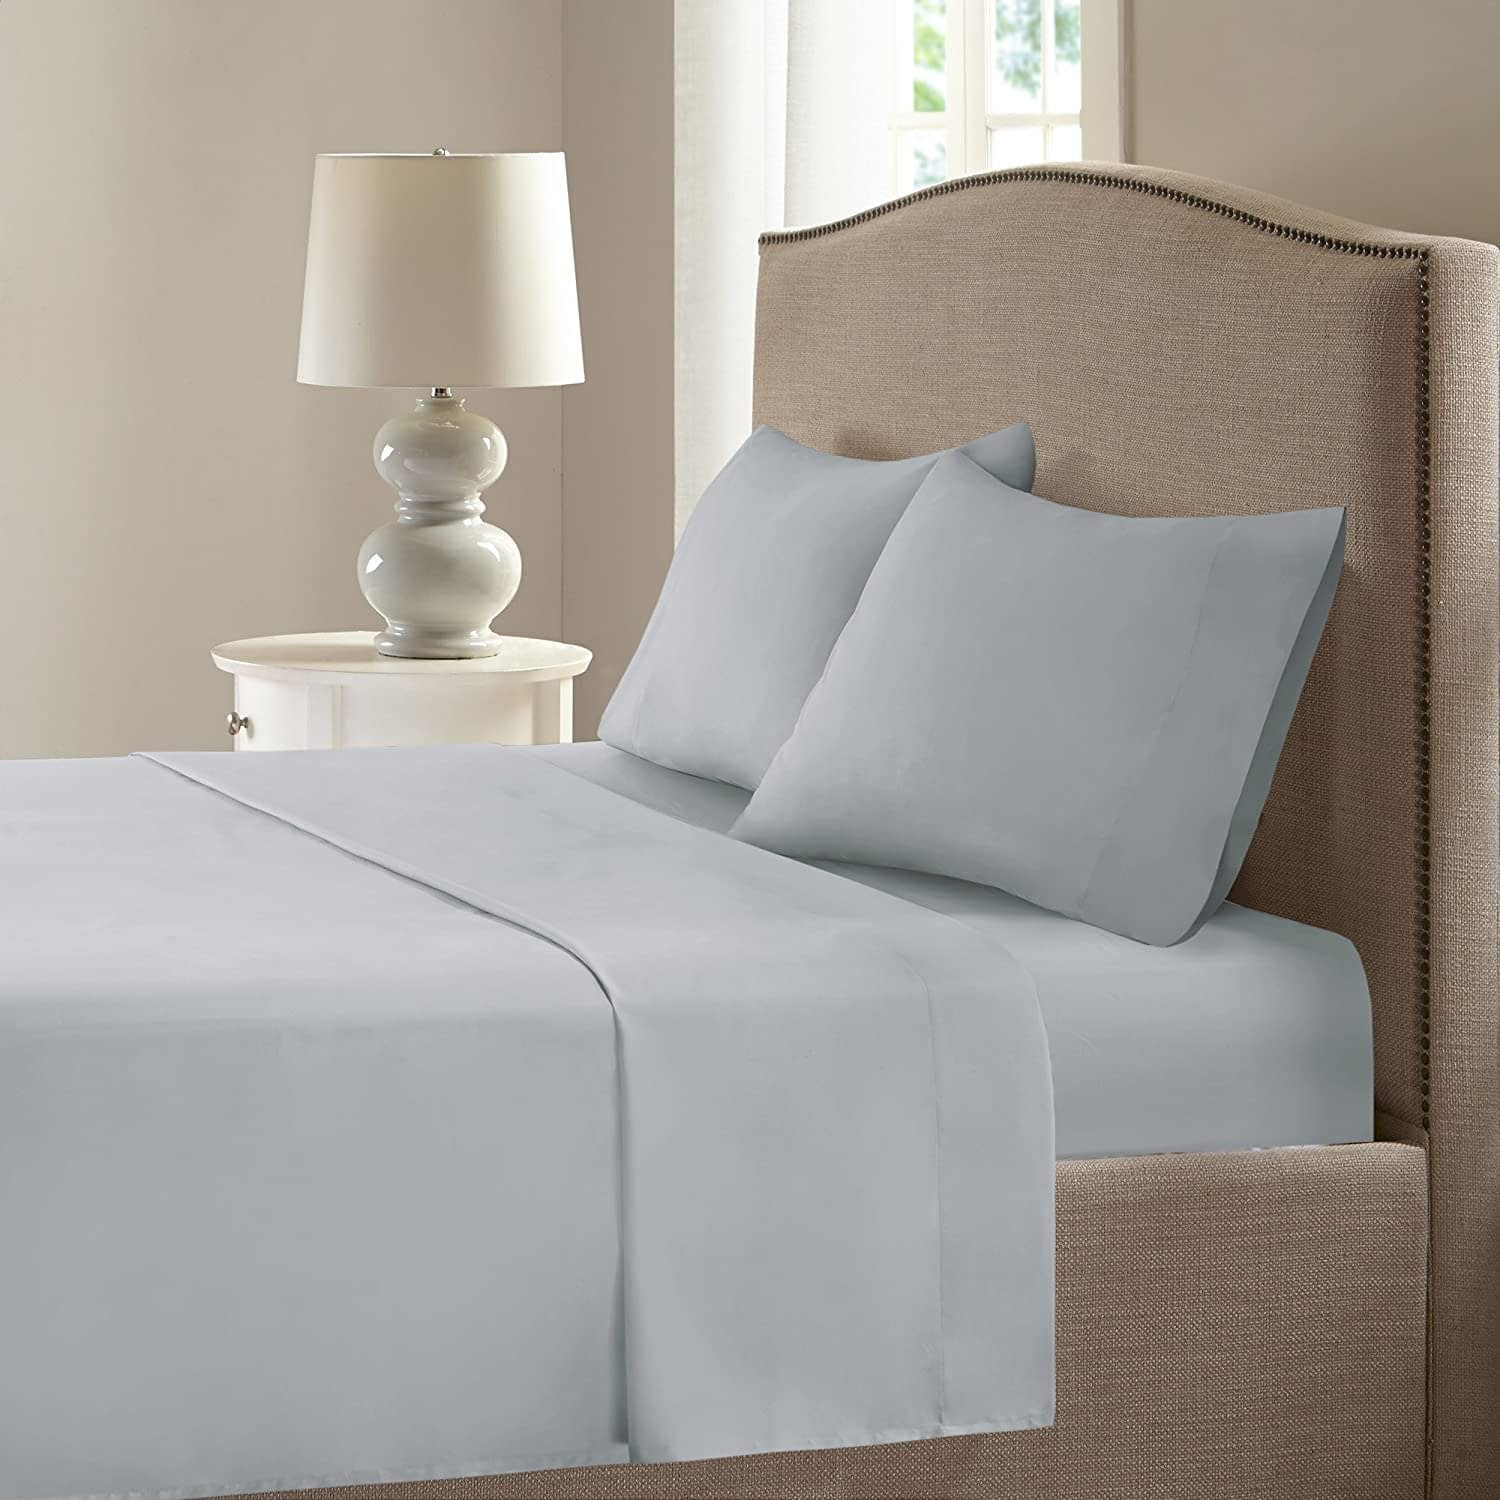 Comfort Spaces Coolmax Moisture Wicking Bed Cooling Sheets